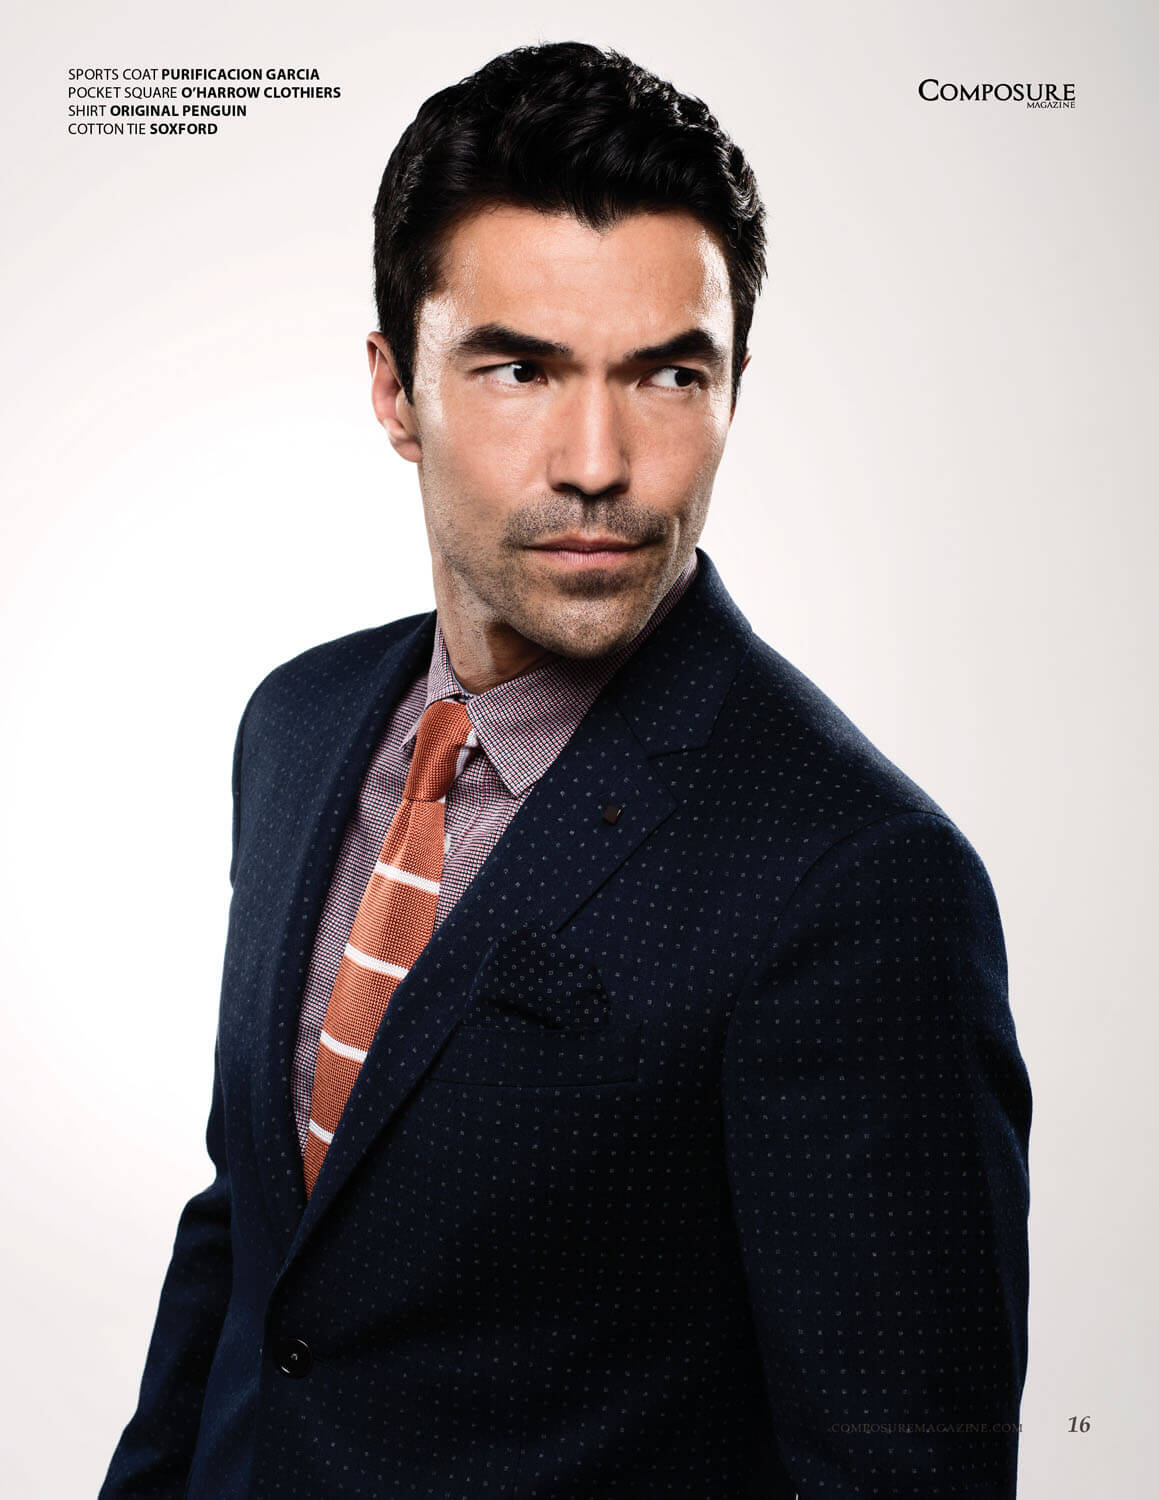 Ian Anthony Dale with a weight of 76 kg and a feet size of N/A in favorite outfit & clothing style